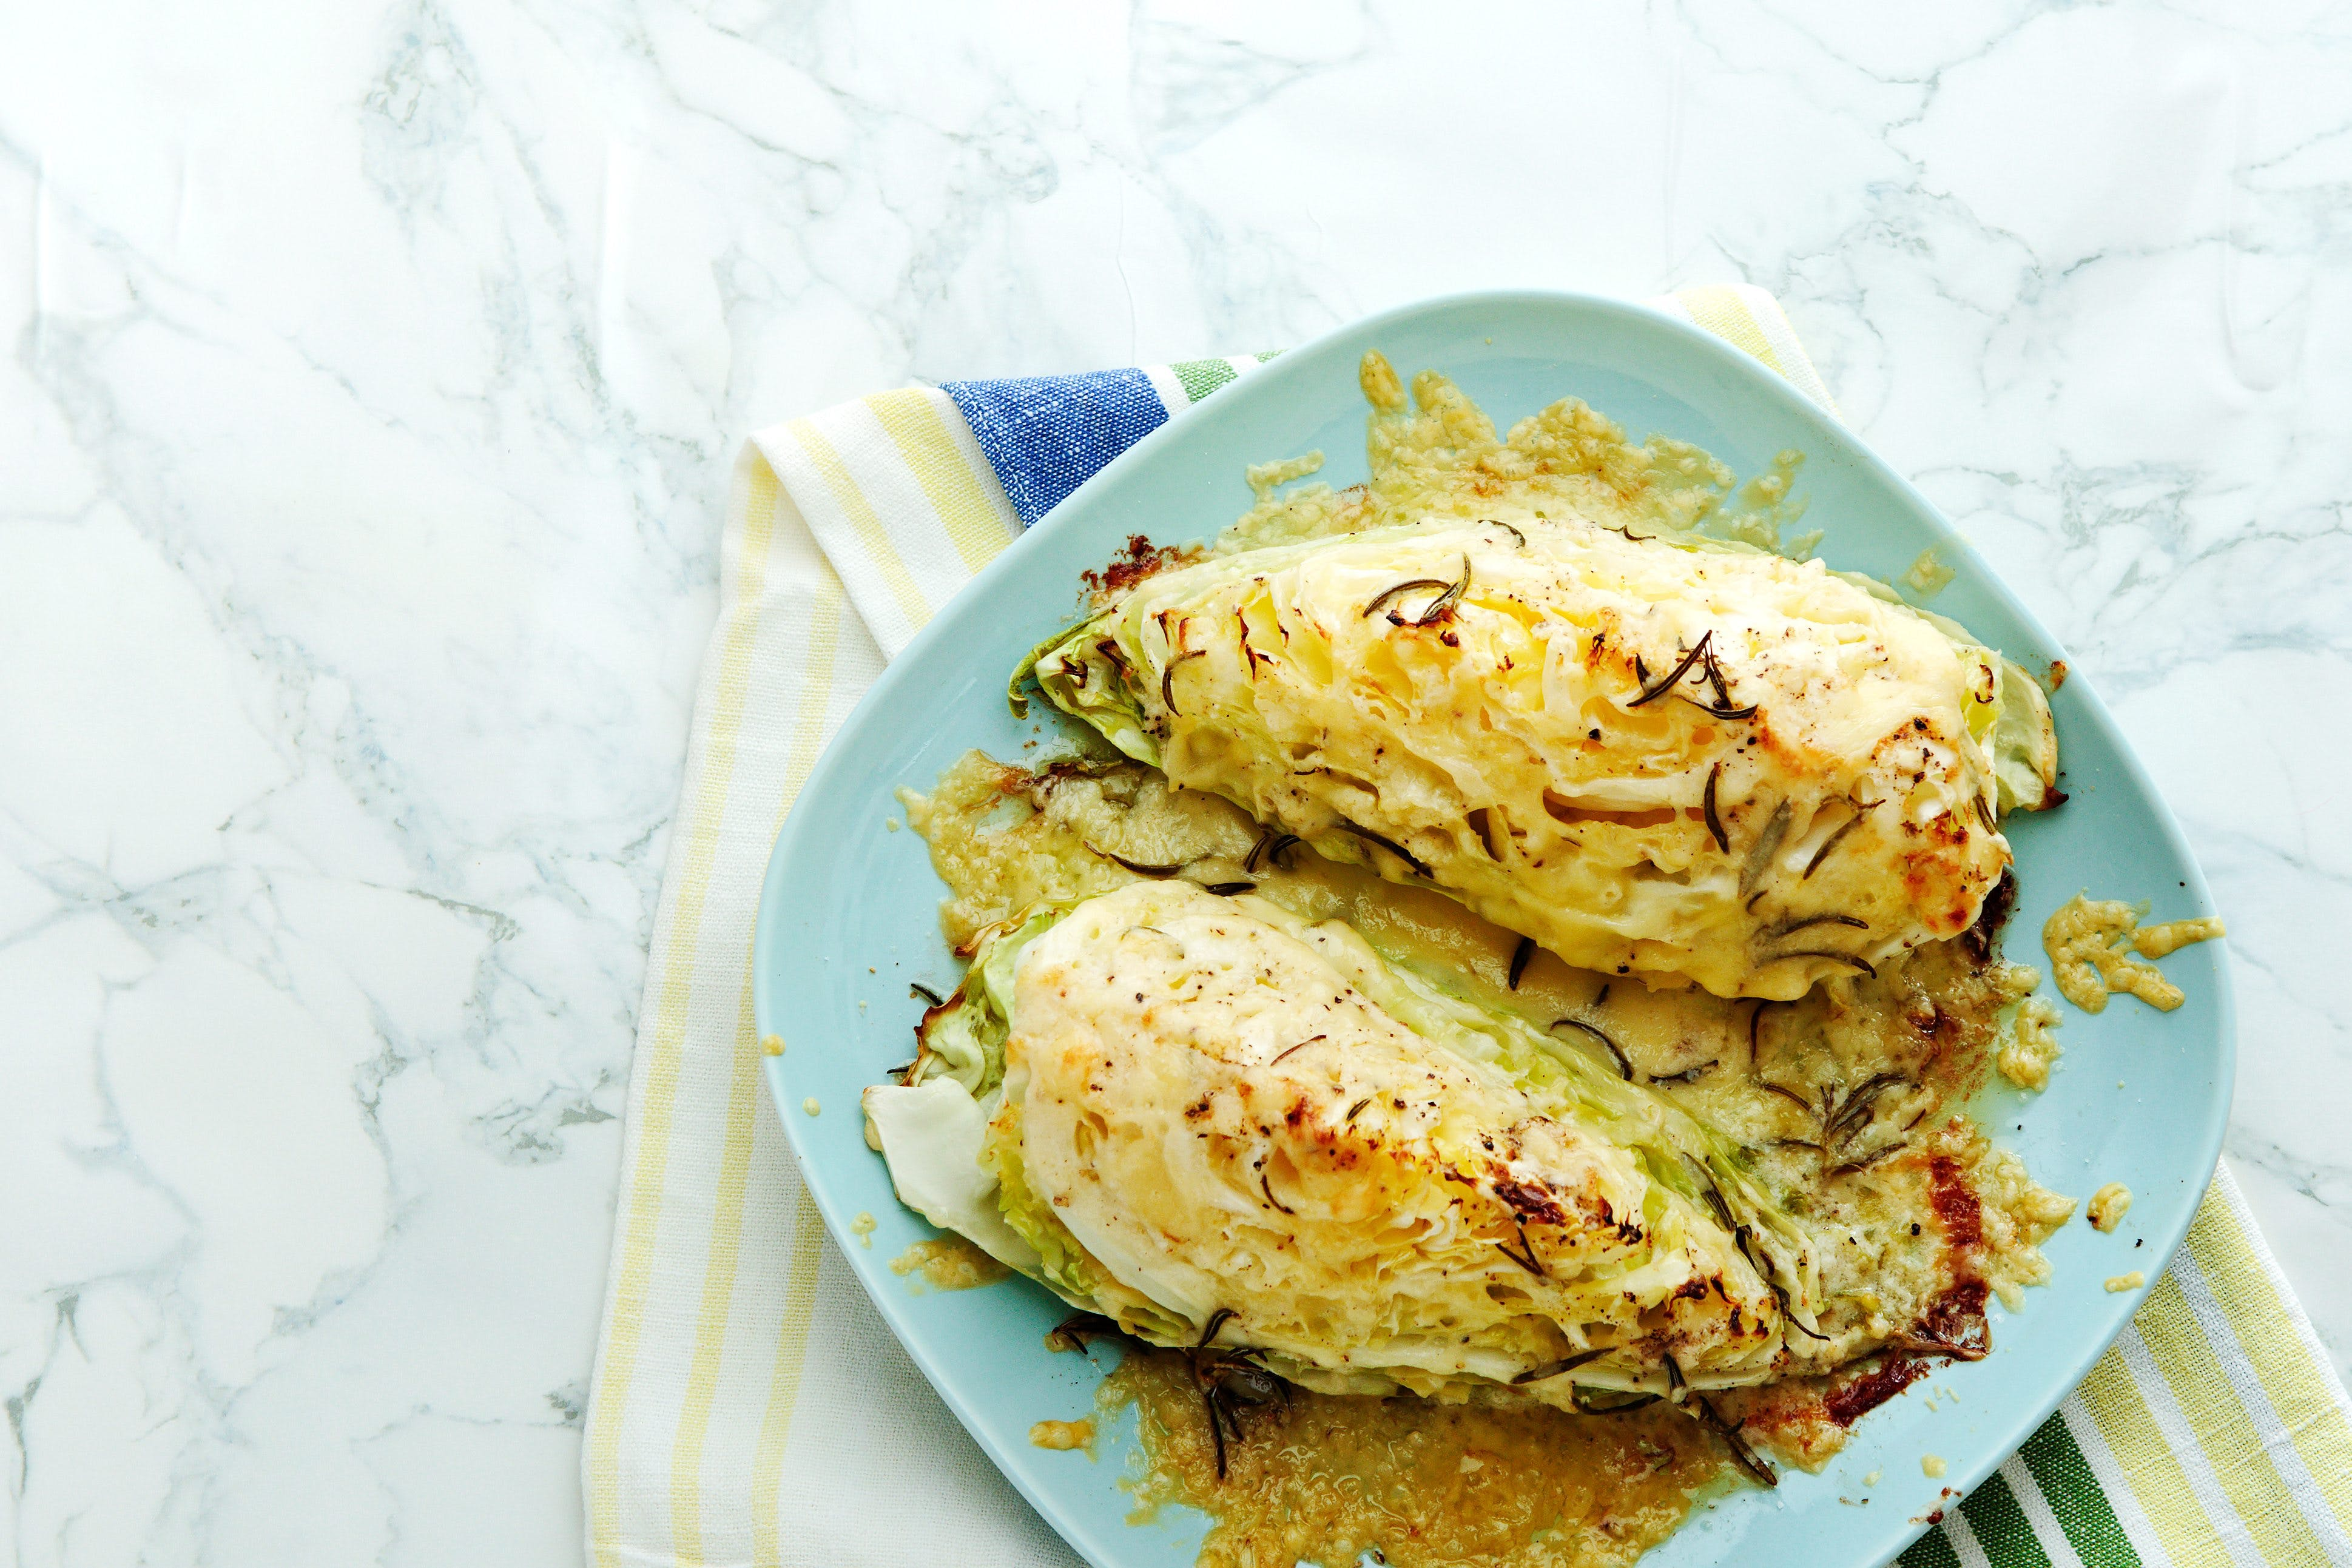 Roasted pointed cabbage with mozzarella cheese